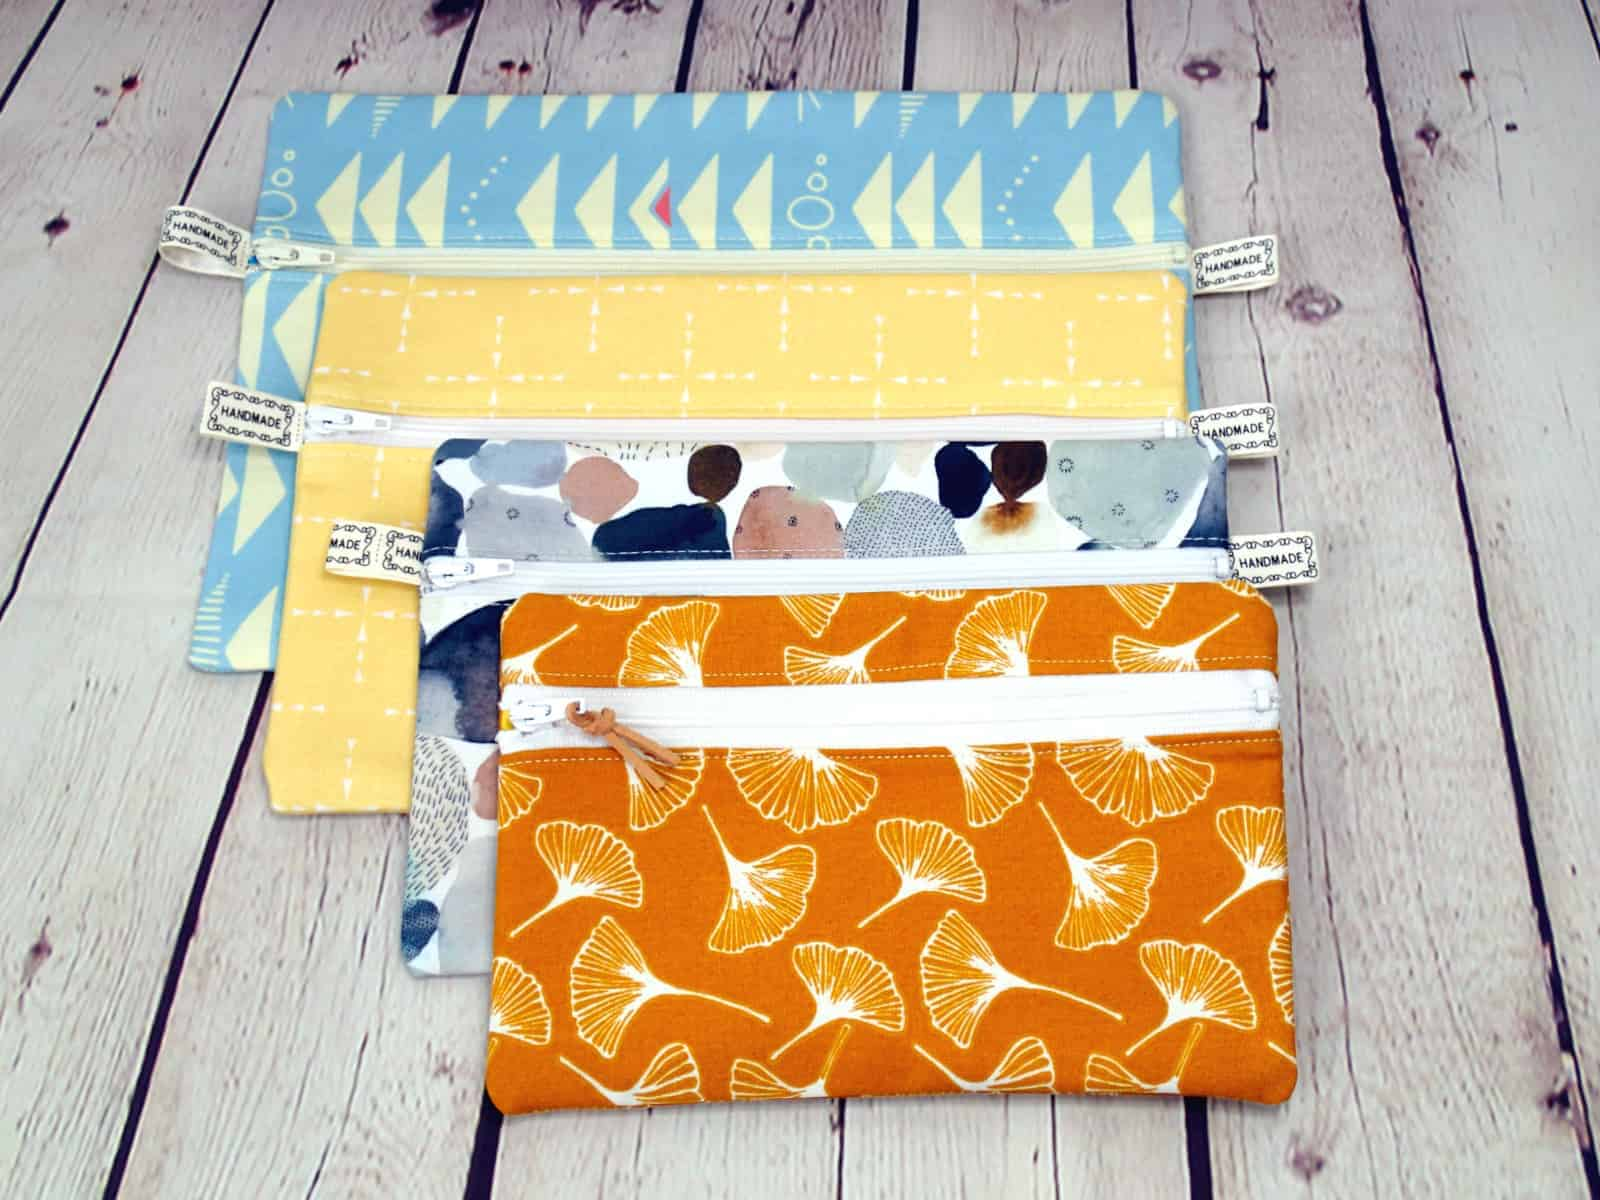 4 easy to sew zipper pouches, image comparing the size of the finished zipper bags from one sewing pattern